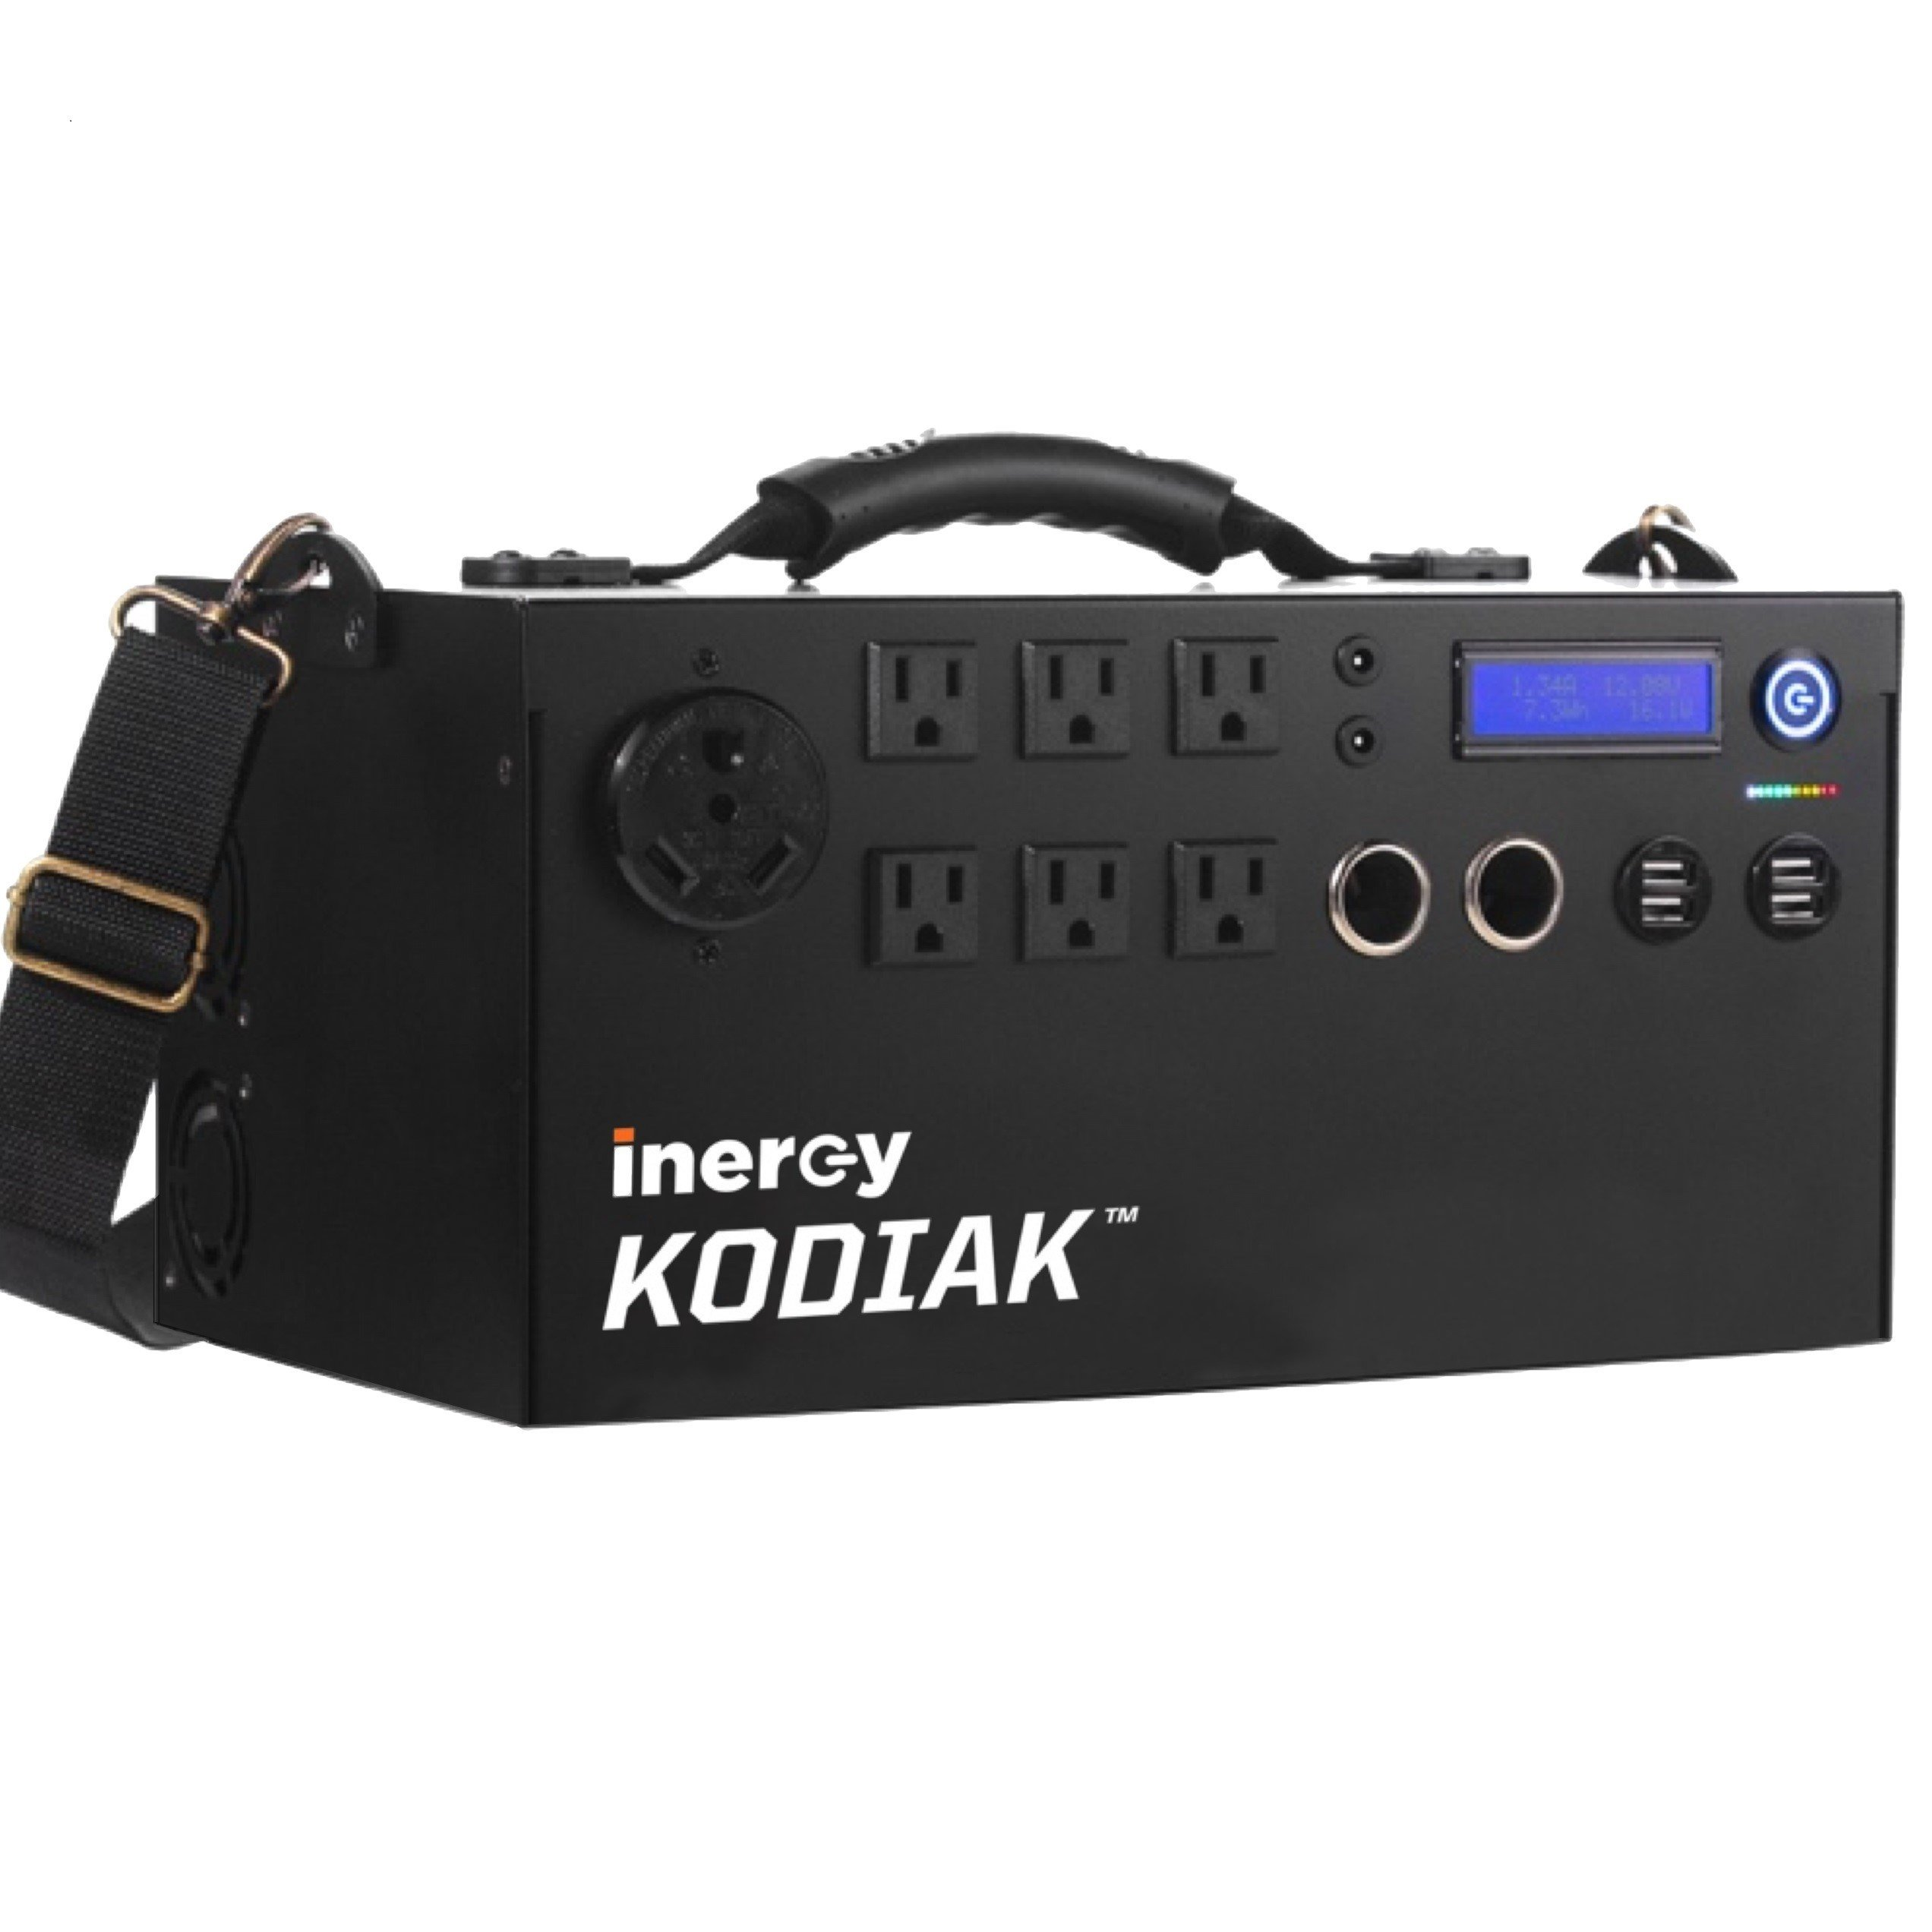 Inergy Kodiak 1100 Watt (1.1kWh) Power Bank Solar Generator - Basic Model - Lithium Ion Emergency & Camping Electric Battery Portable Power Source by Inergy